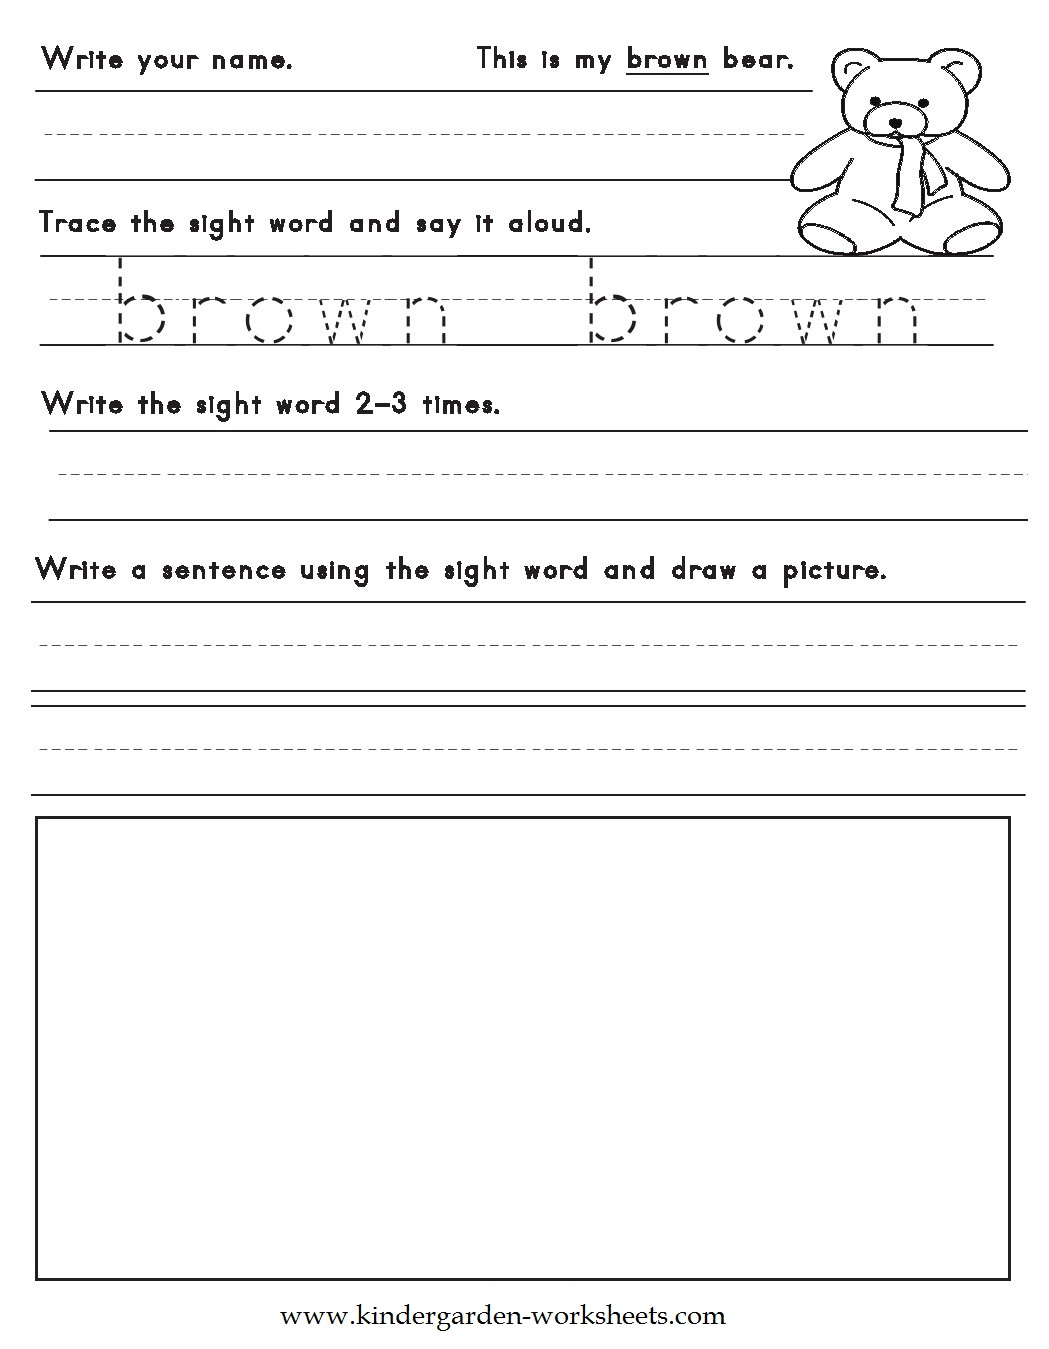 Kindergarten Worksheets Color Words Worksheets Brown – Color Words Worksheets